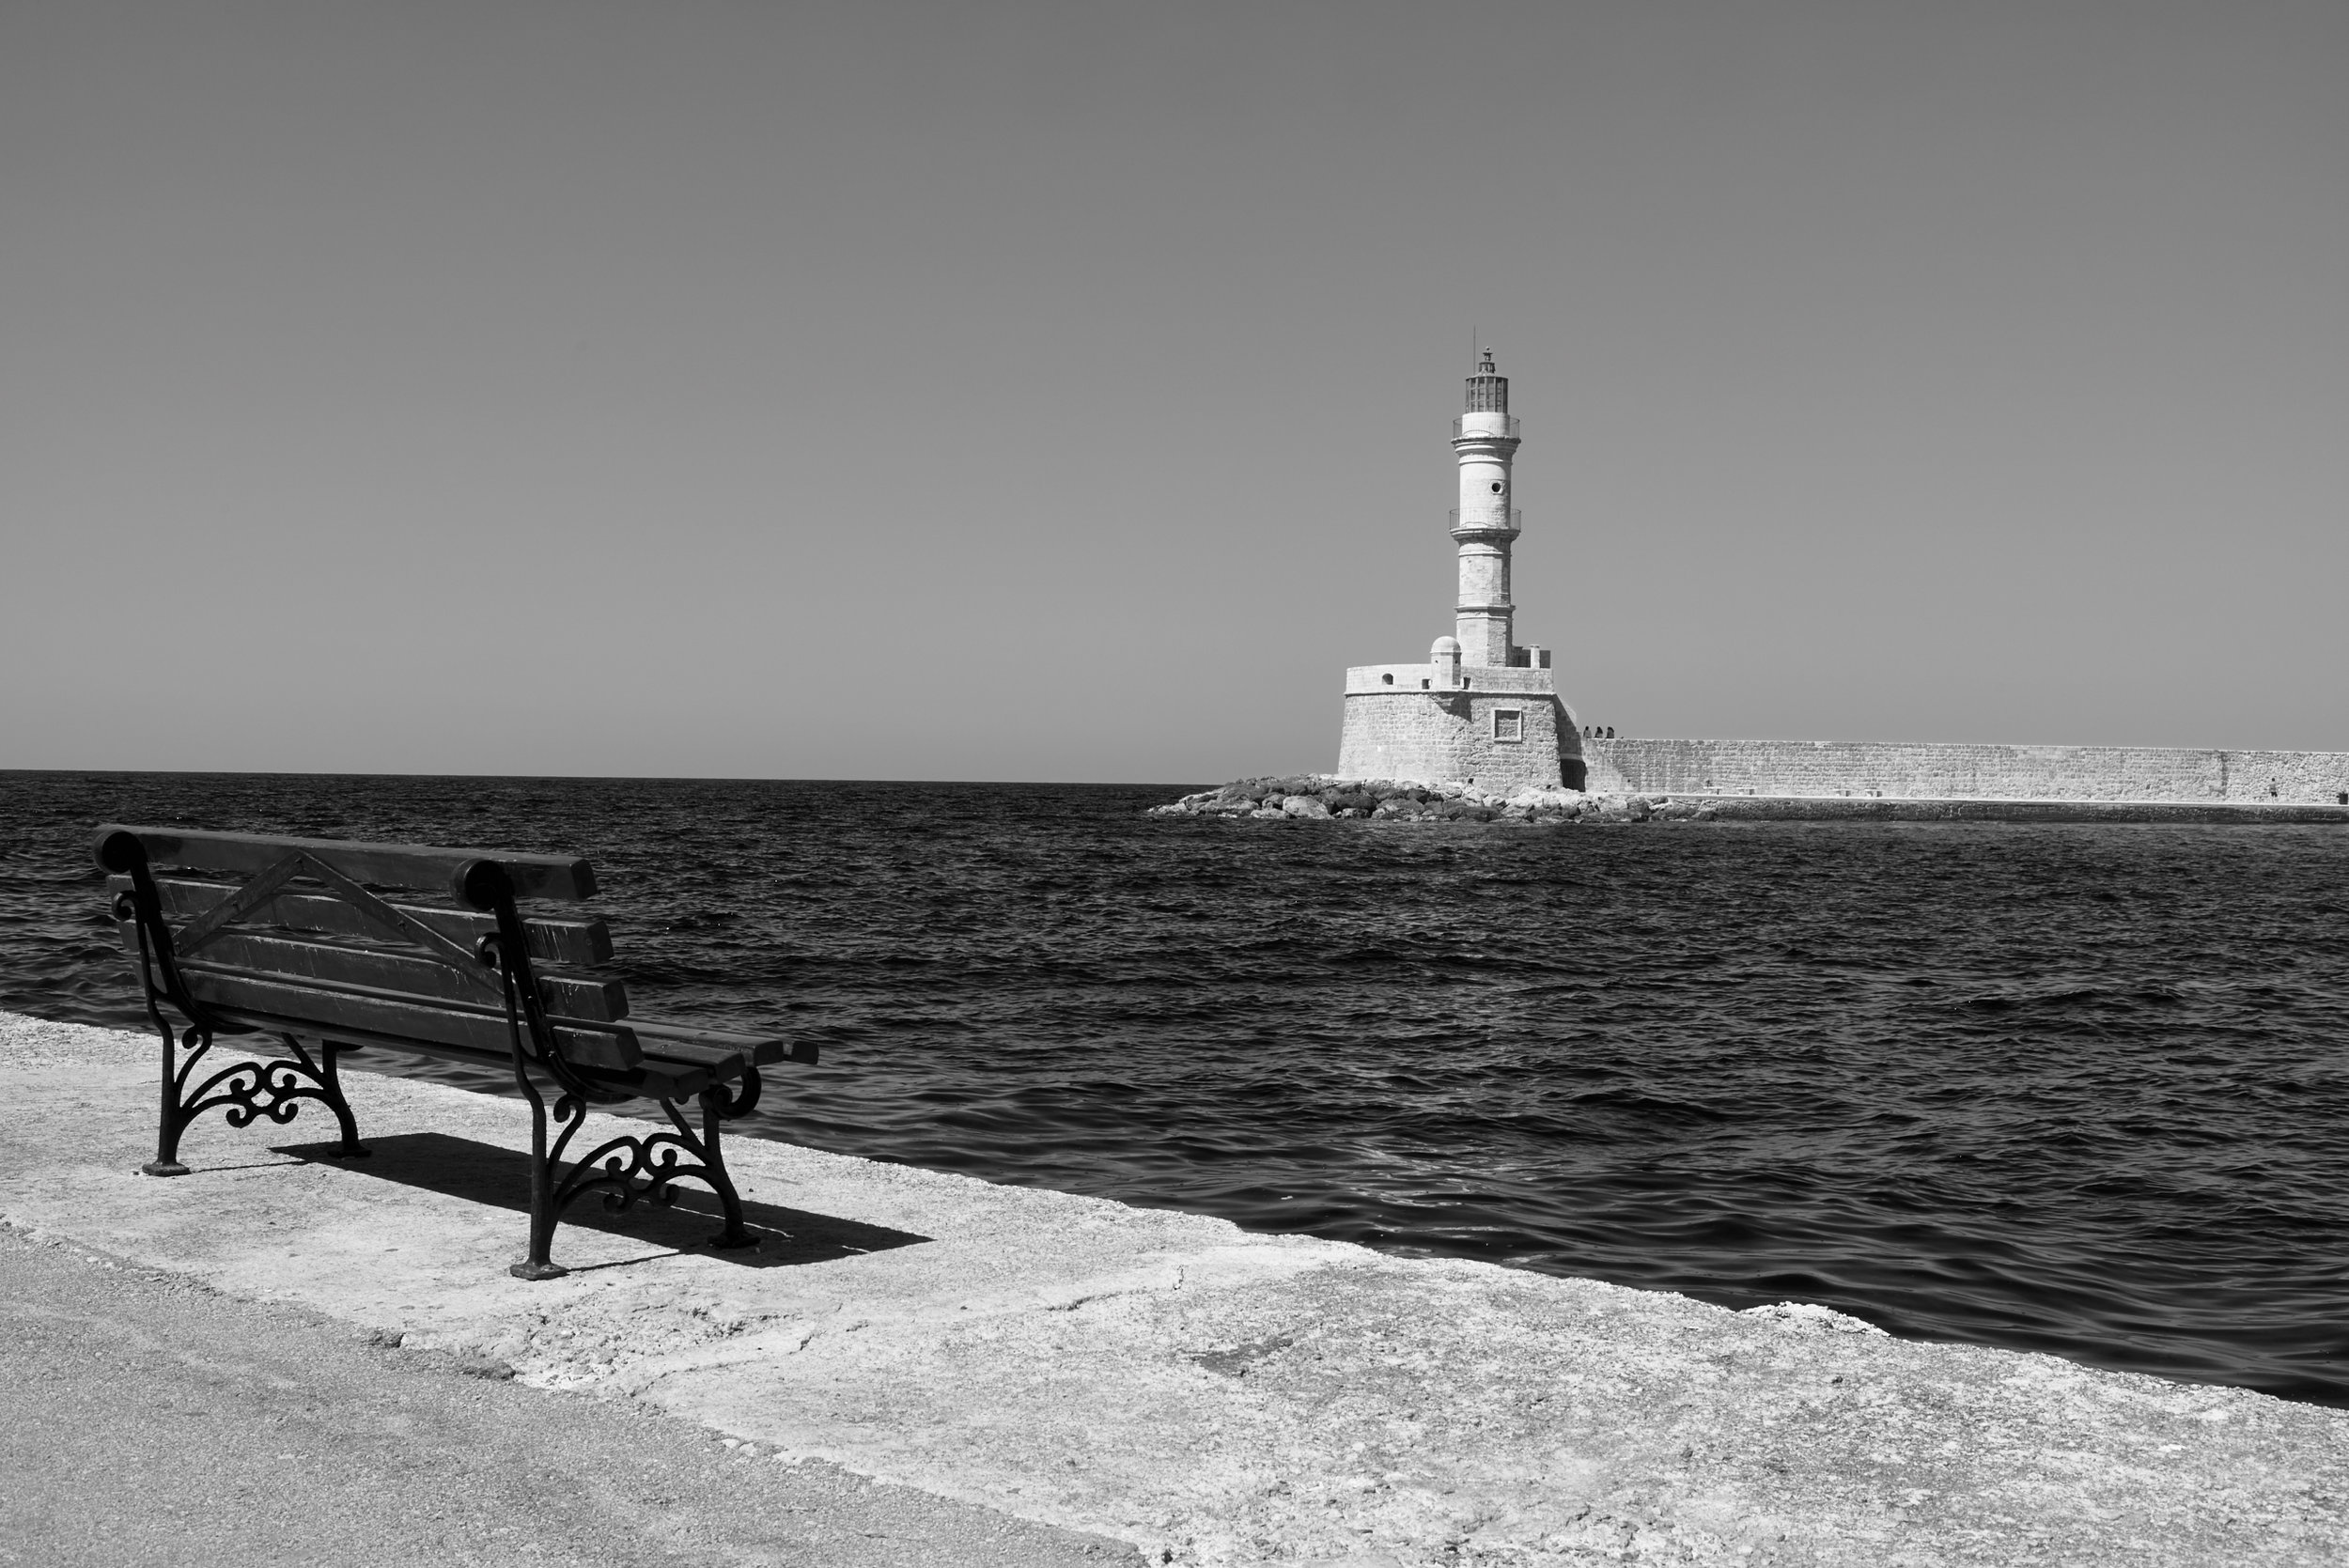 Untitled, Chania, 2016